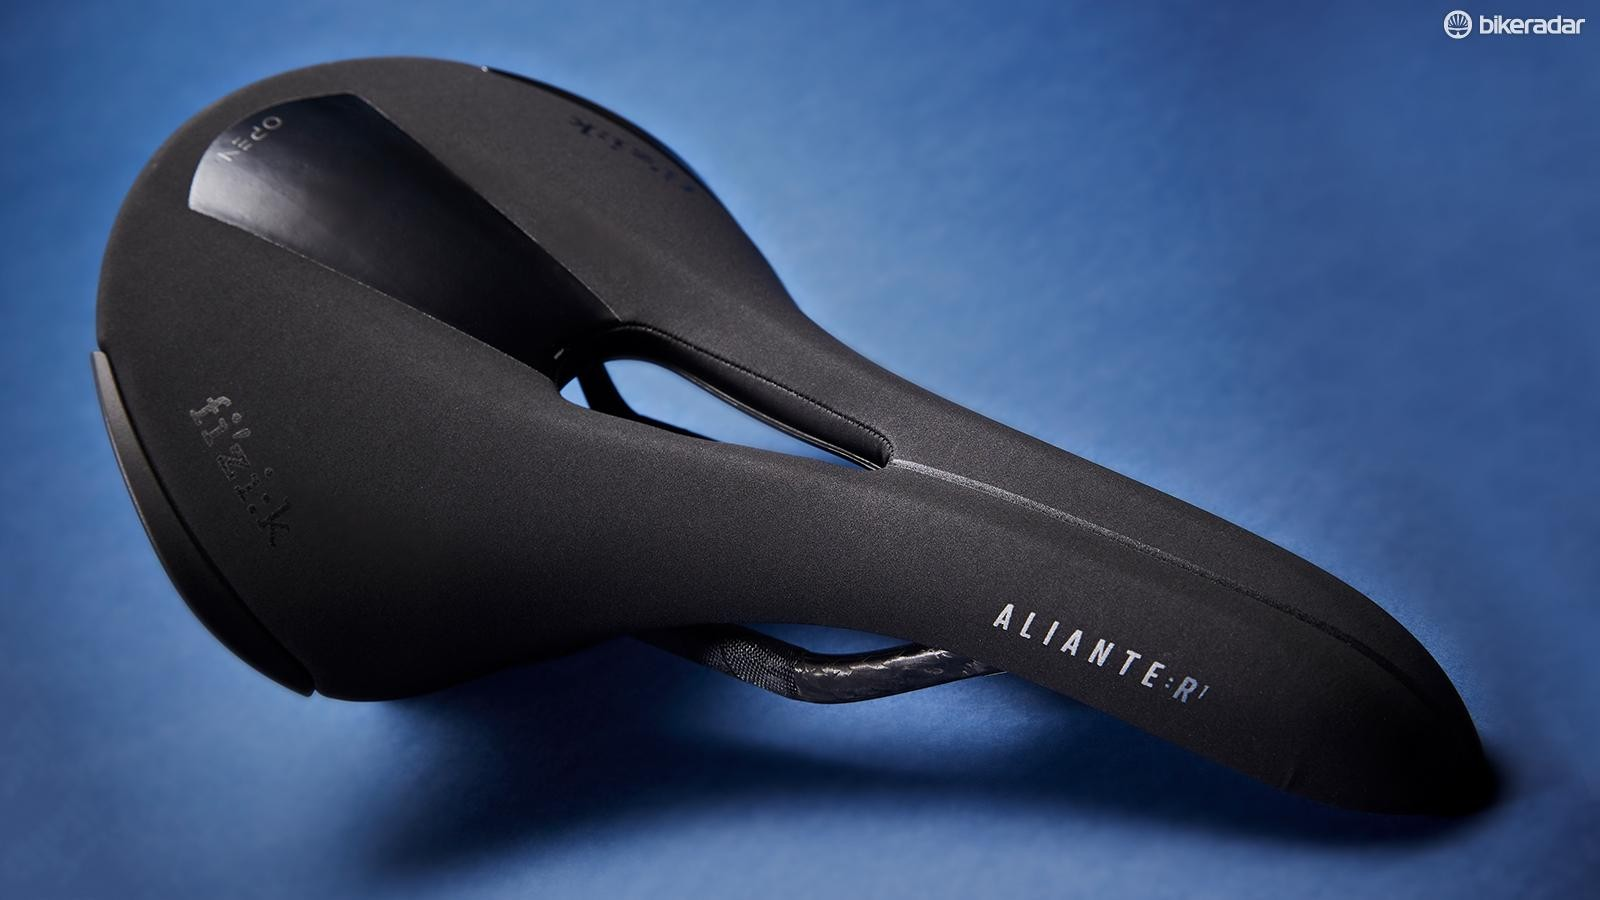 Fizik Aliante R1 Open saddle